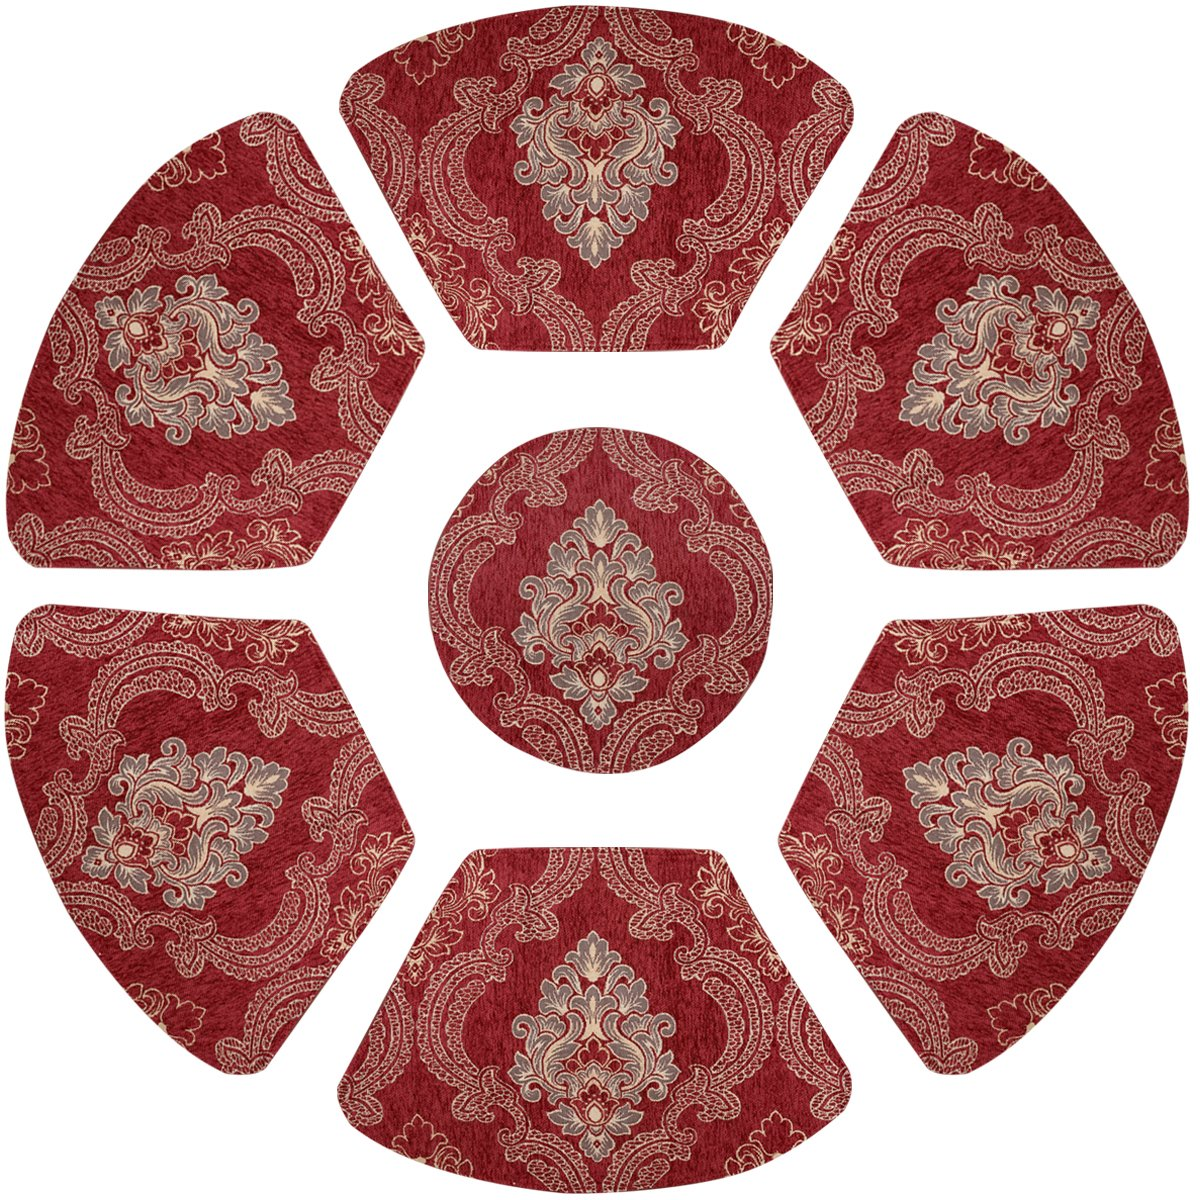 Grelucgo Set of 7 Wedge Placemats And Centerpieces Set For Round Tables, Cranberry